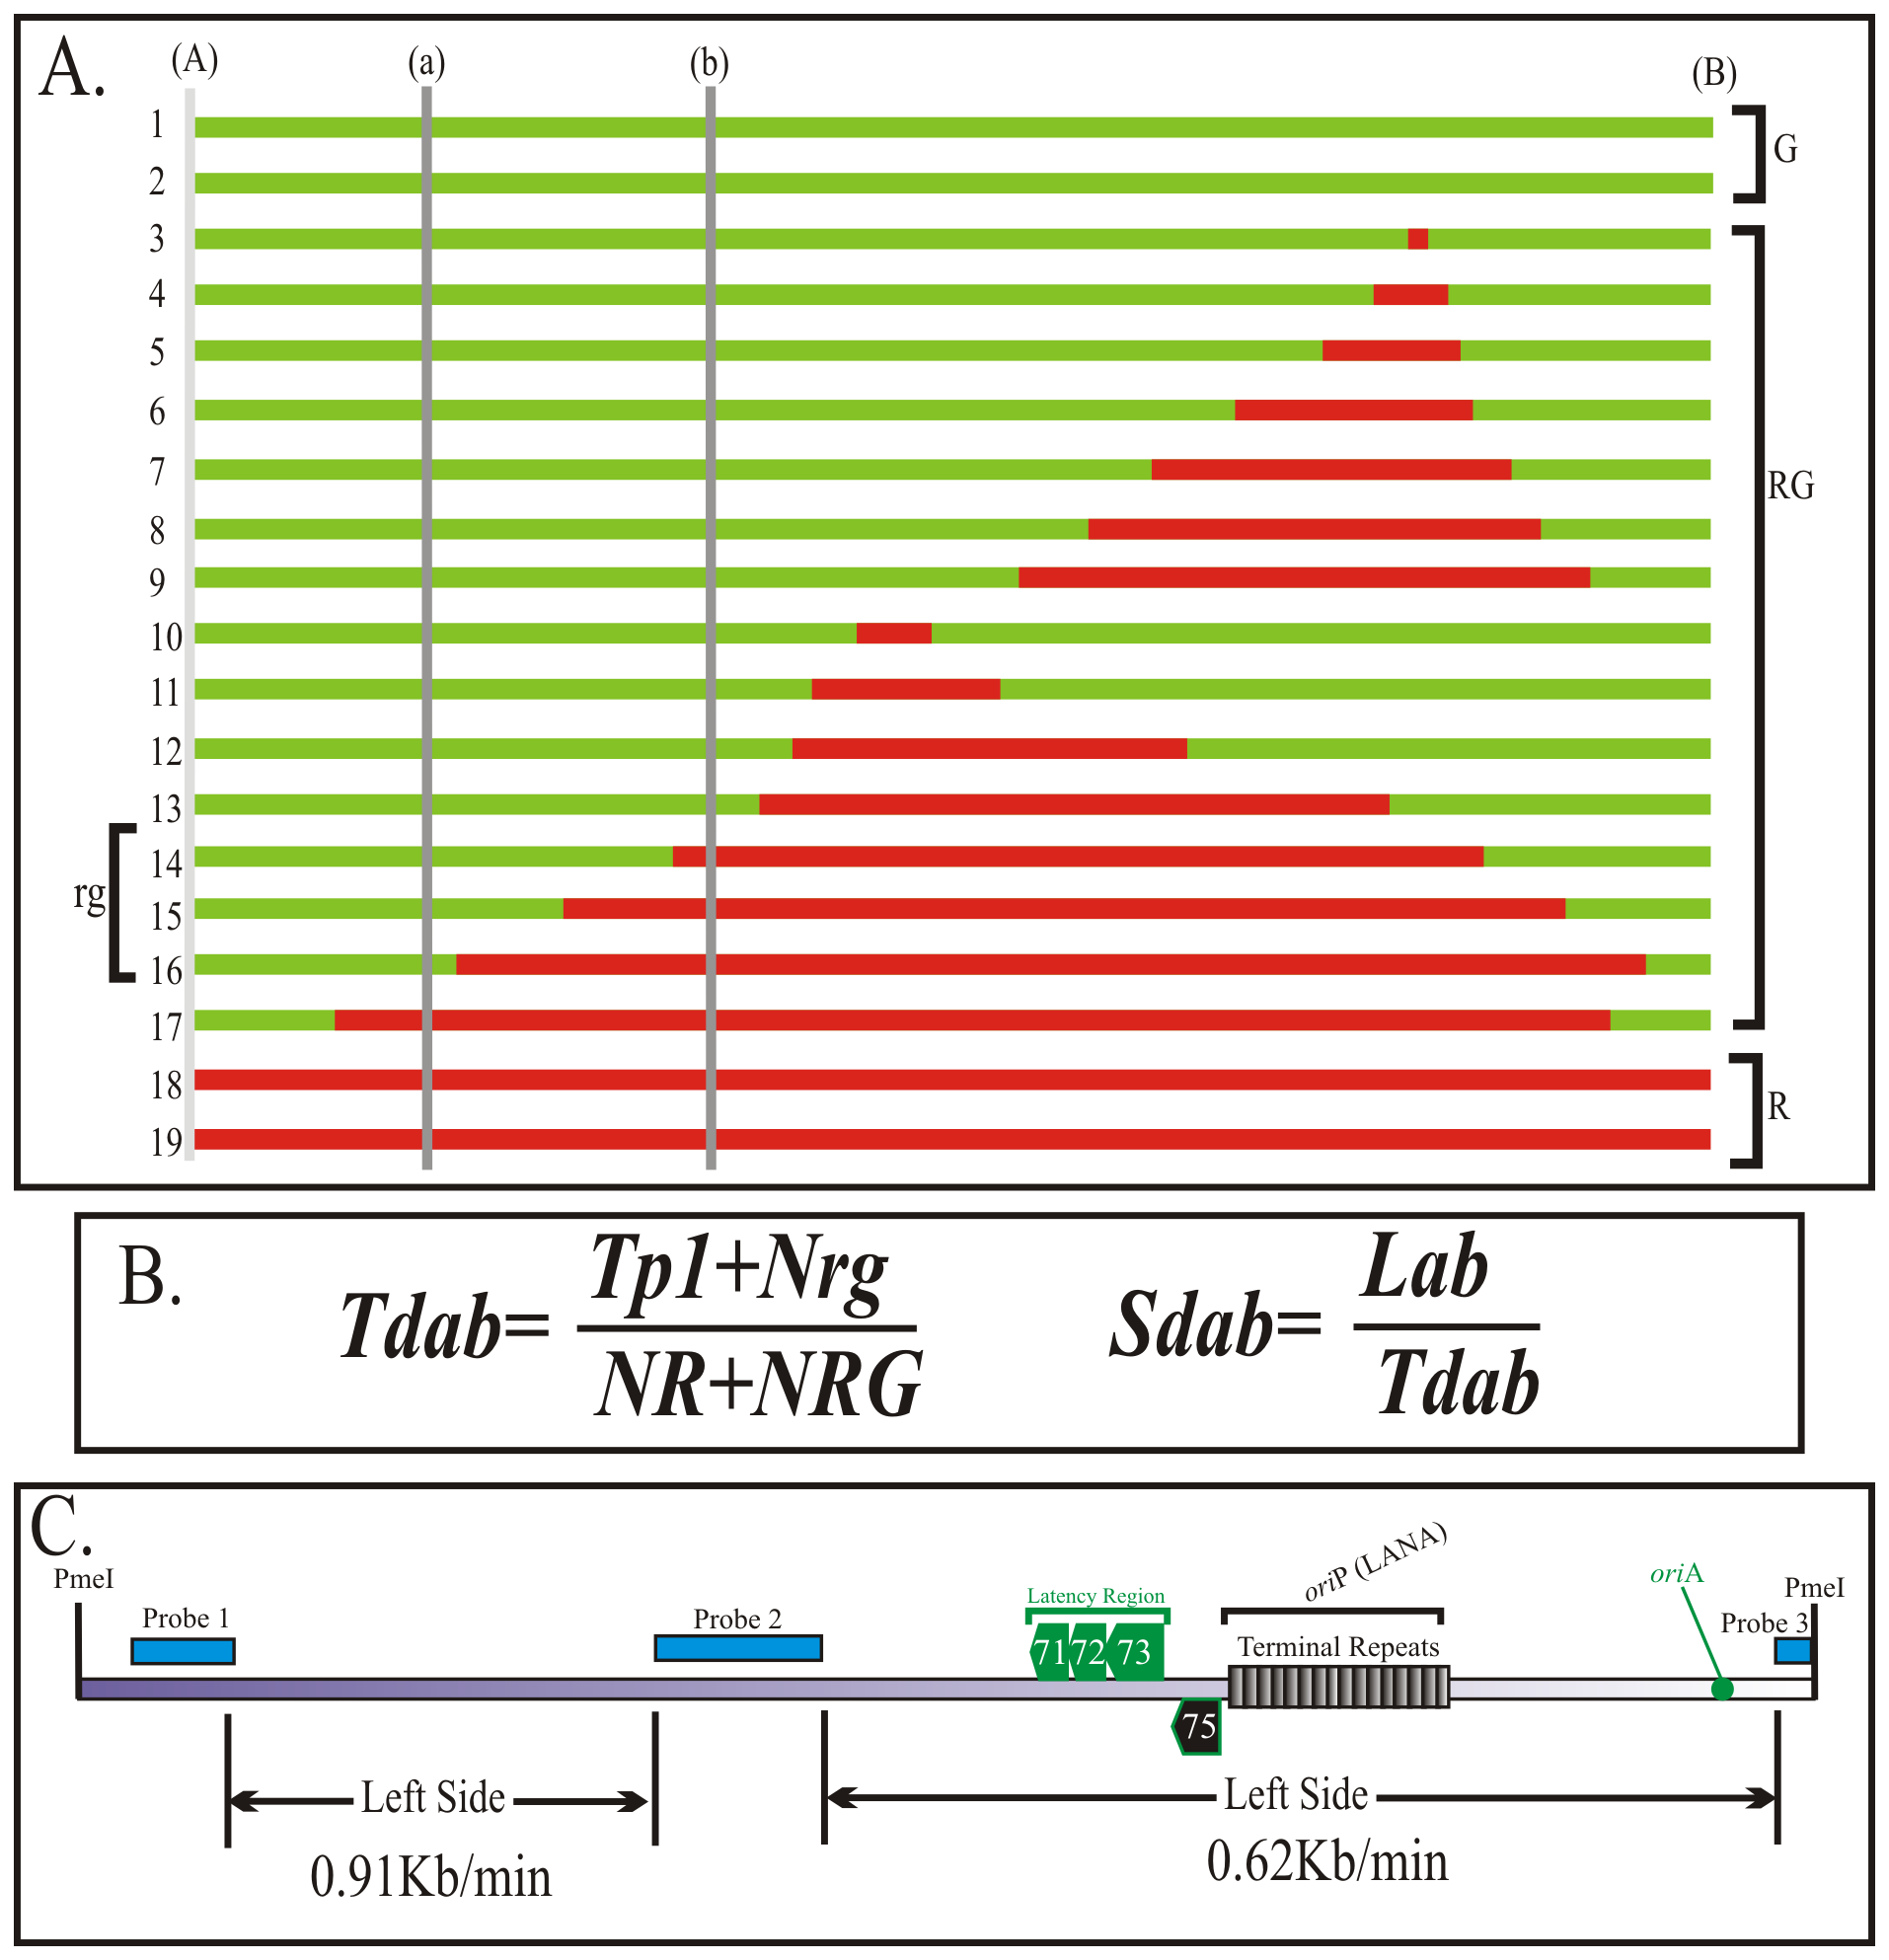 Calculation of the duplication speed of KSHV genome regions.